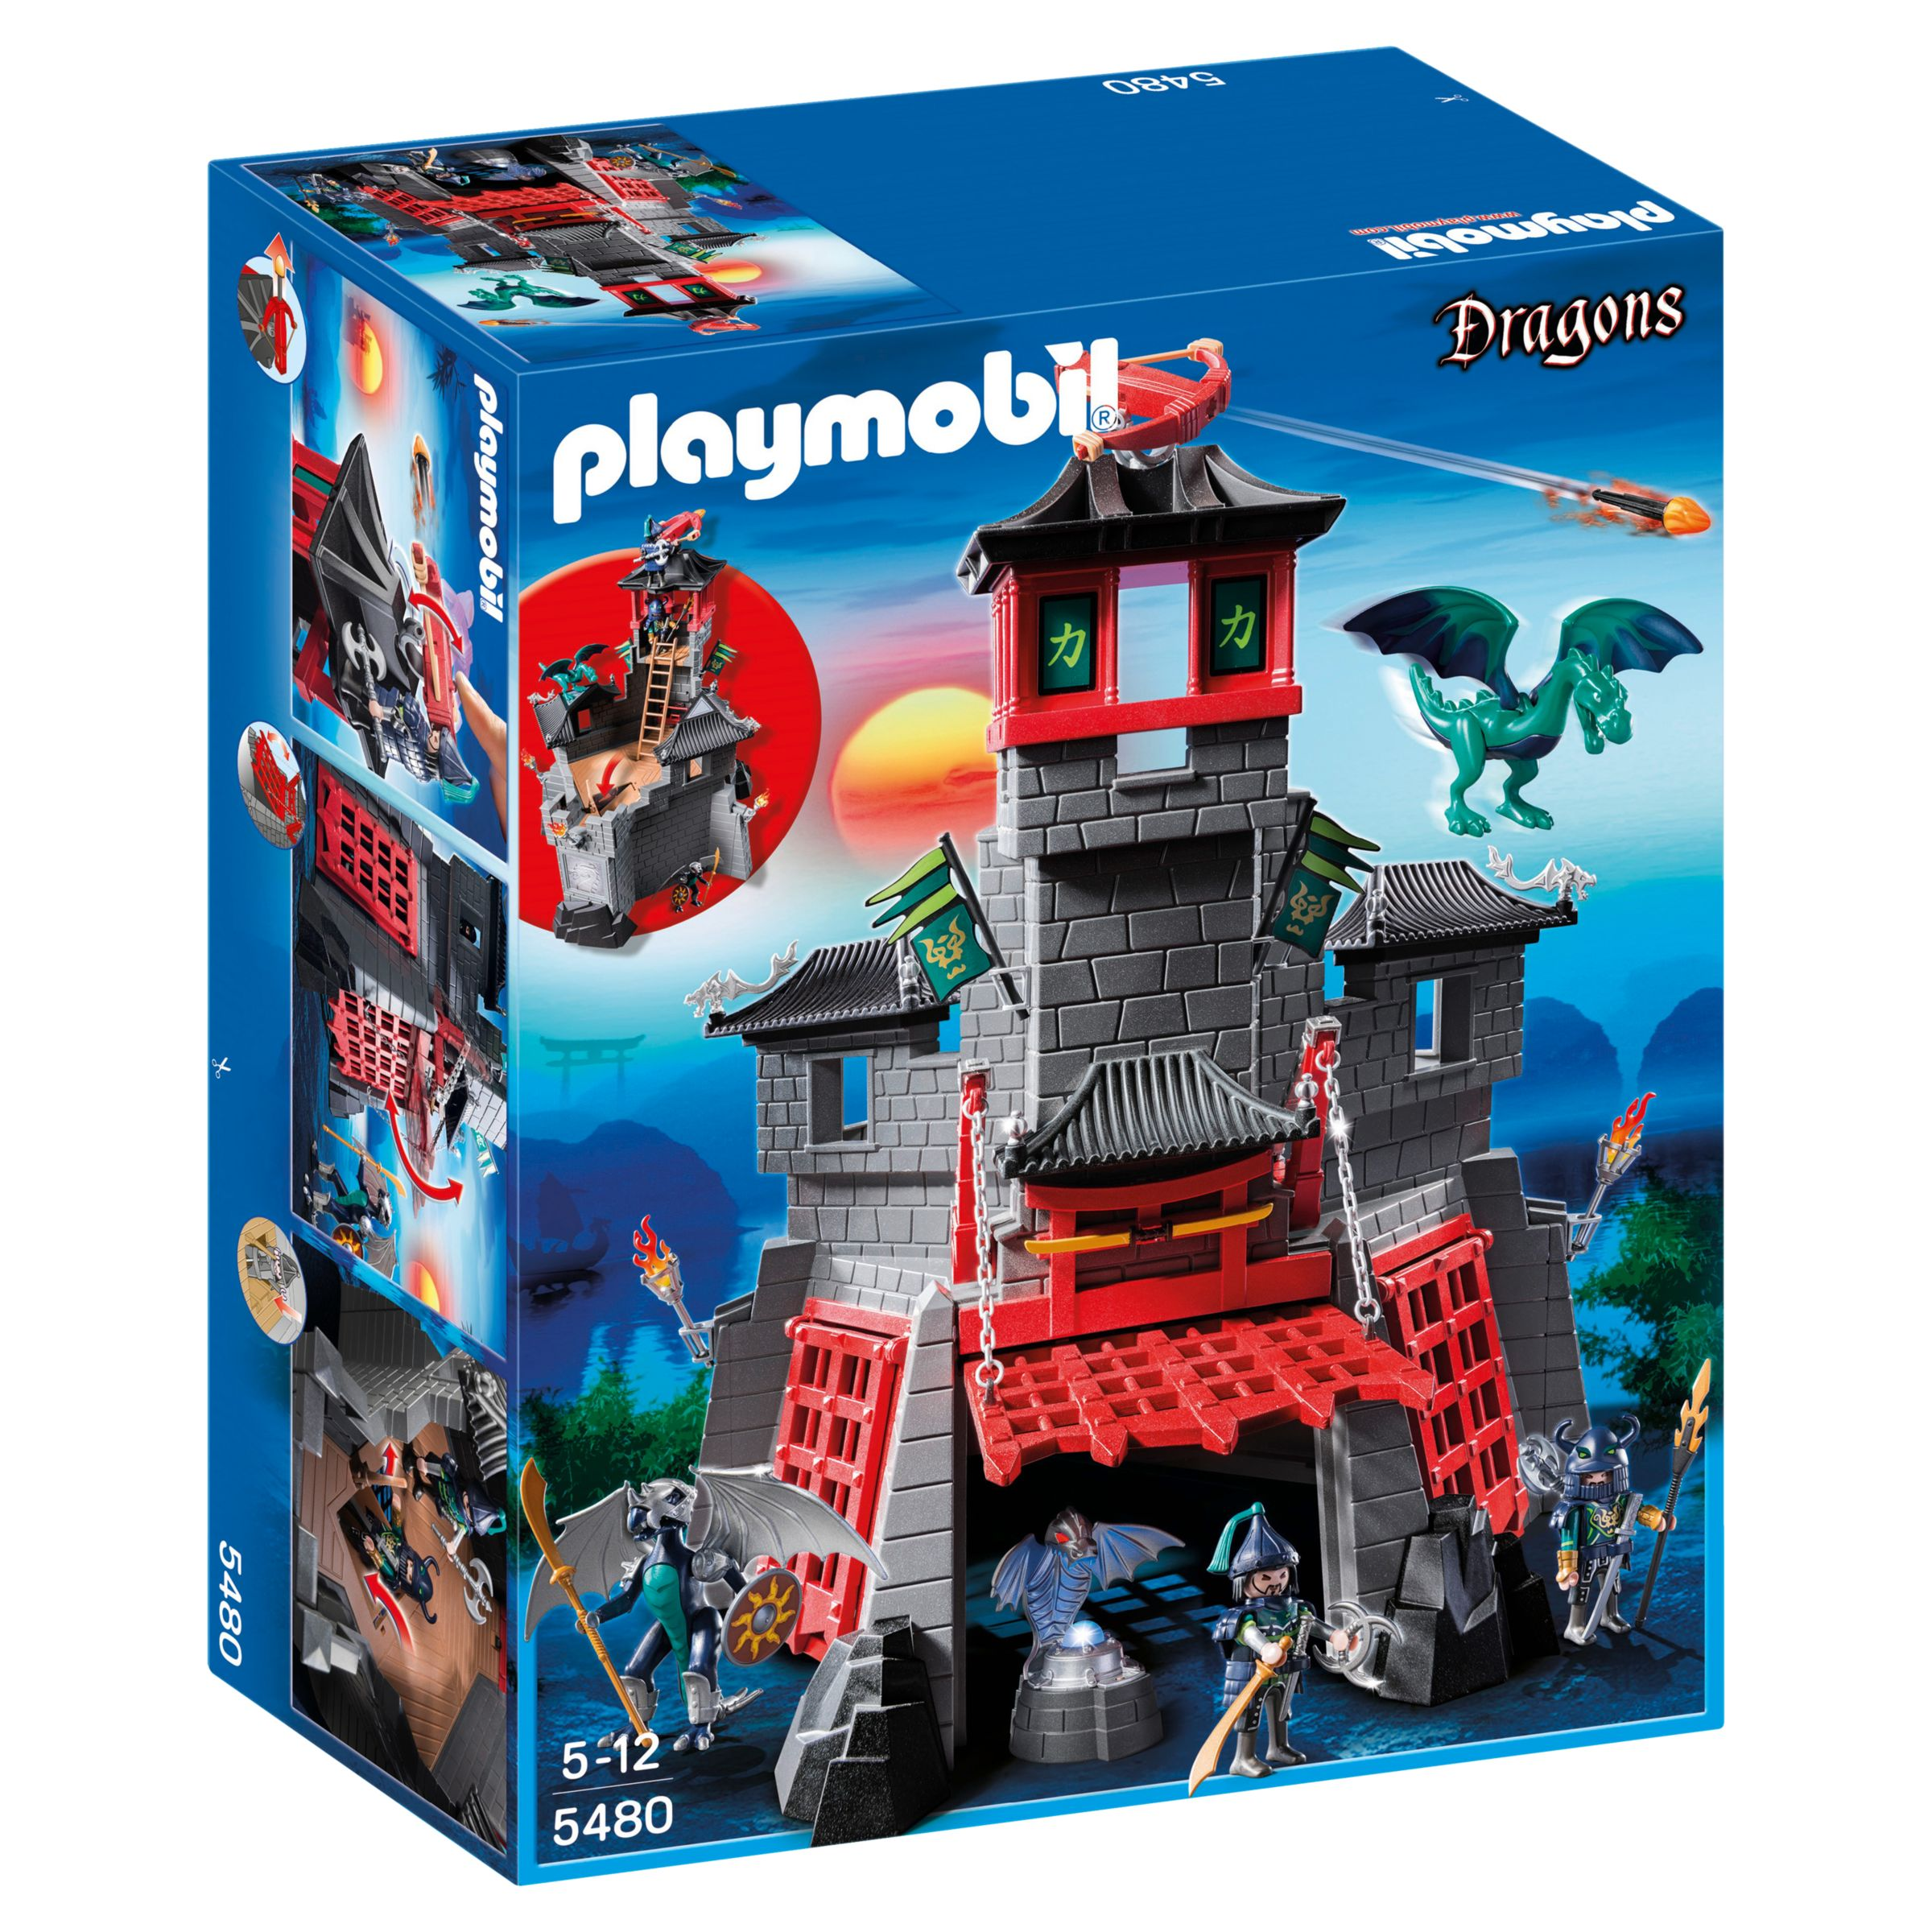 Click here for Playmobil Dragons Secret Dragon Fort